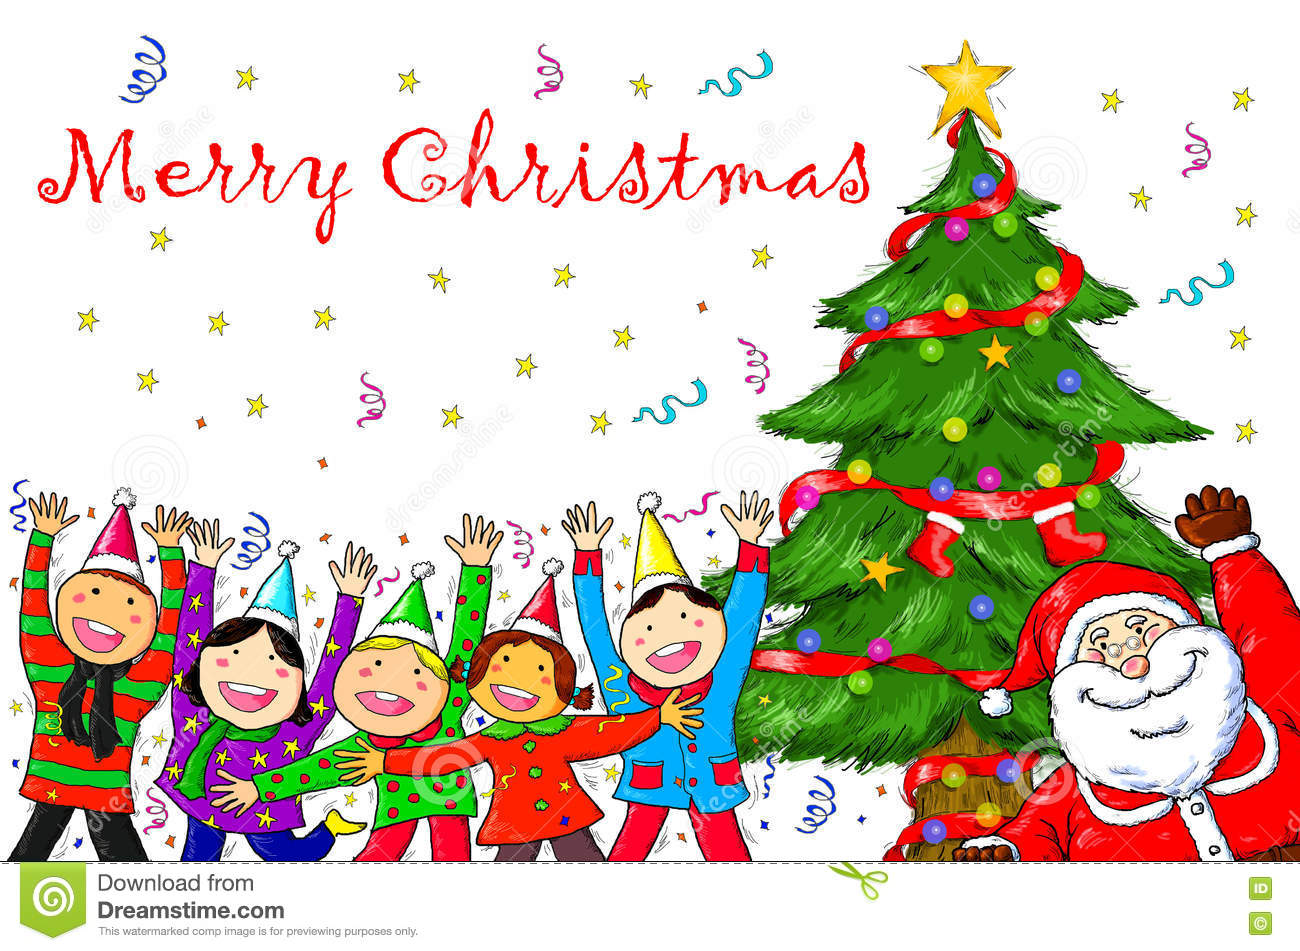 Christmas Celebration Images For Drawing.Merry Christmas Santa Claus People Christmas Tree